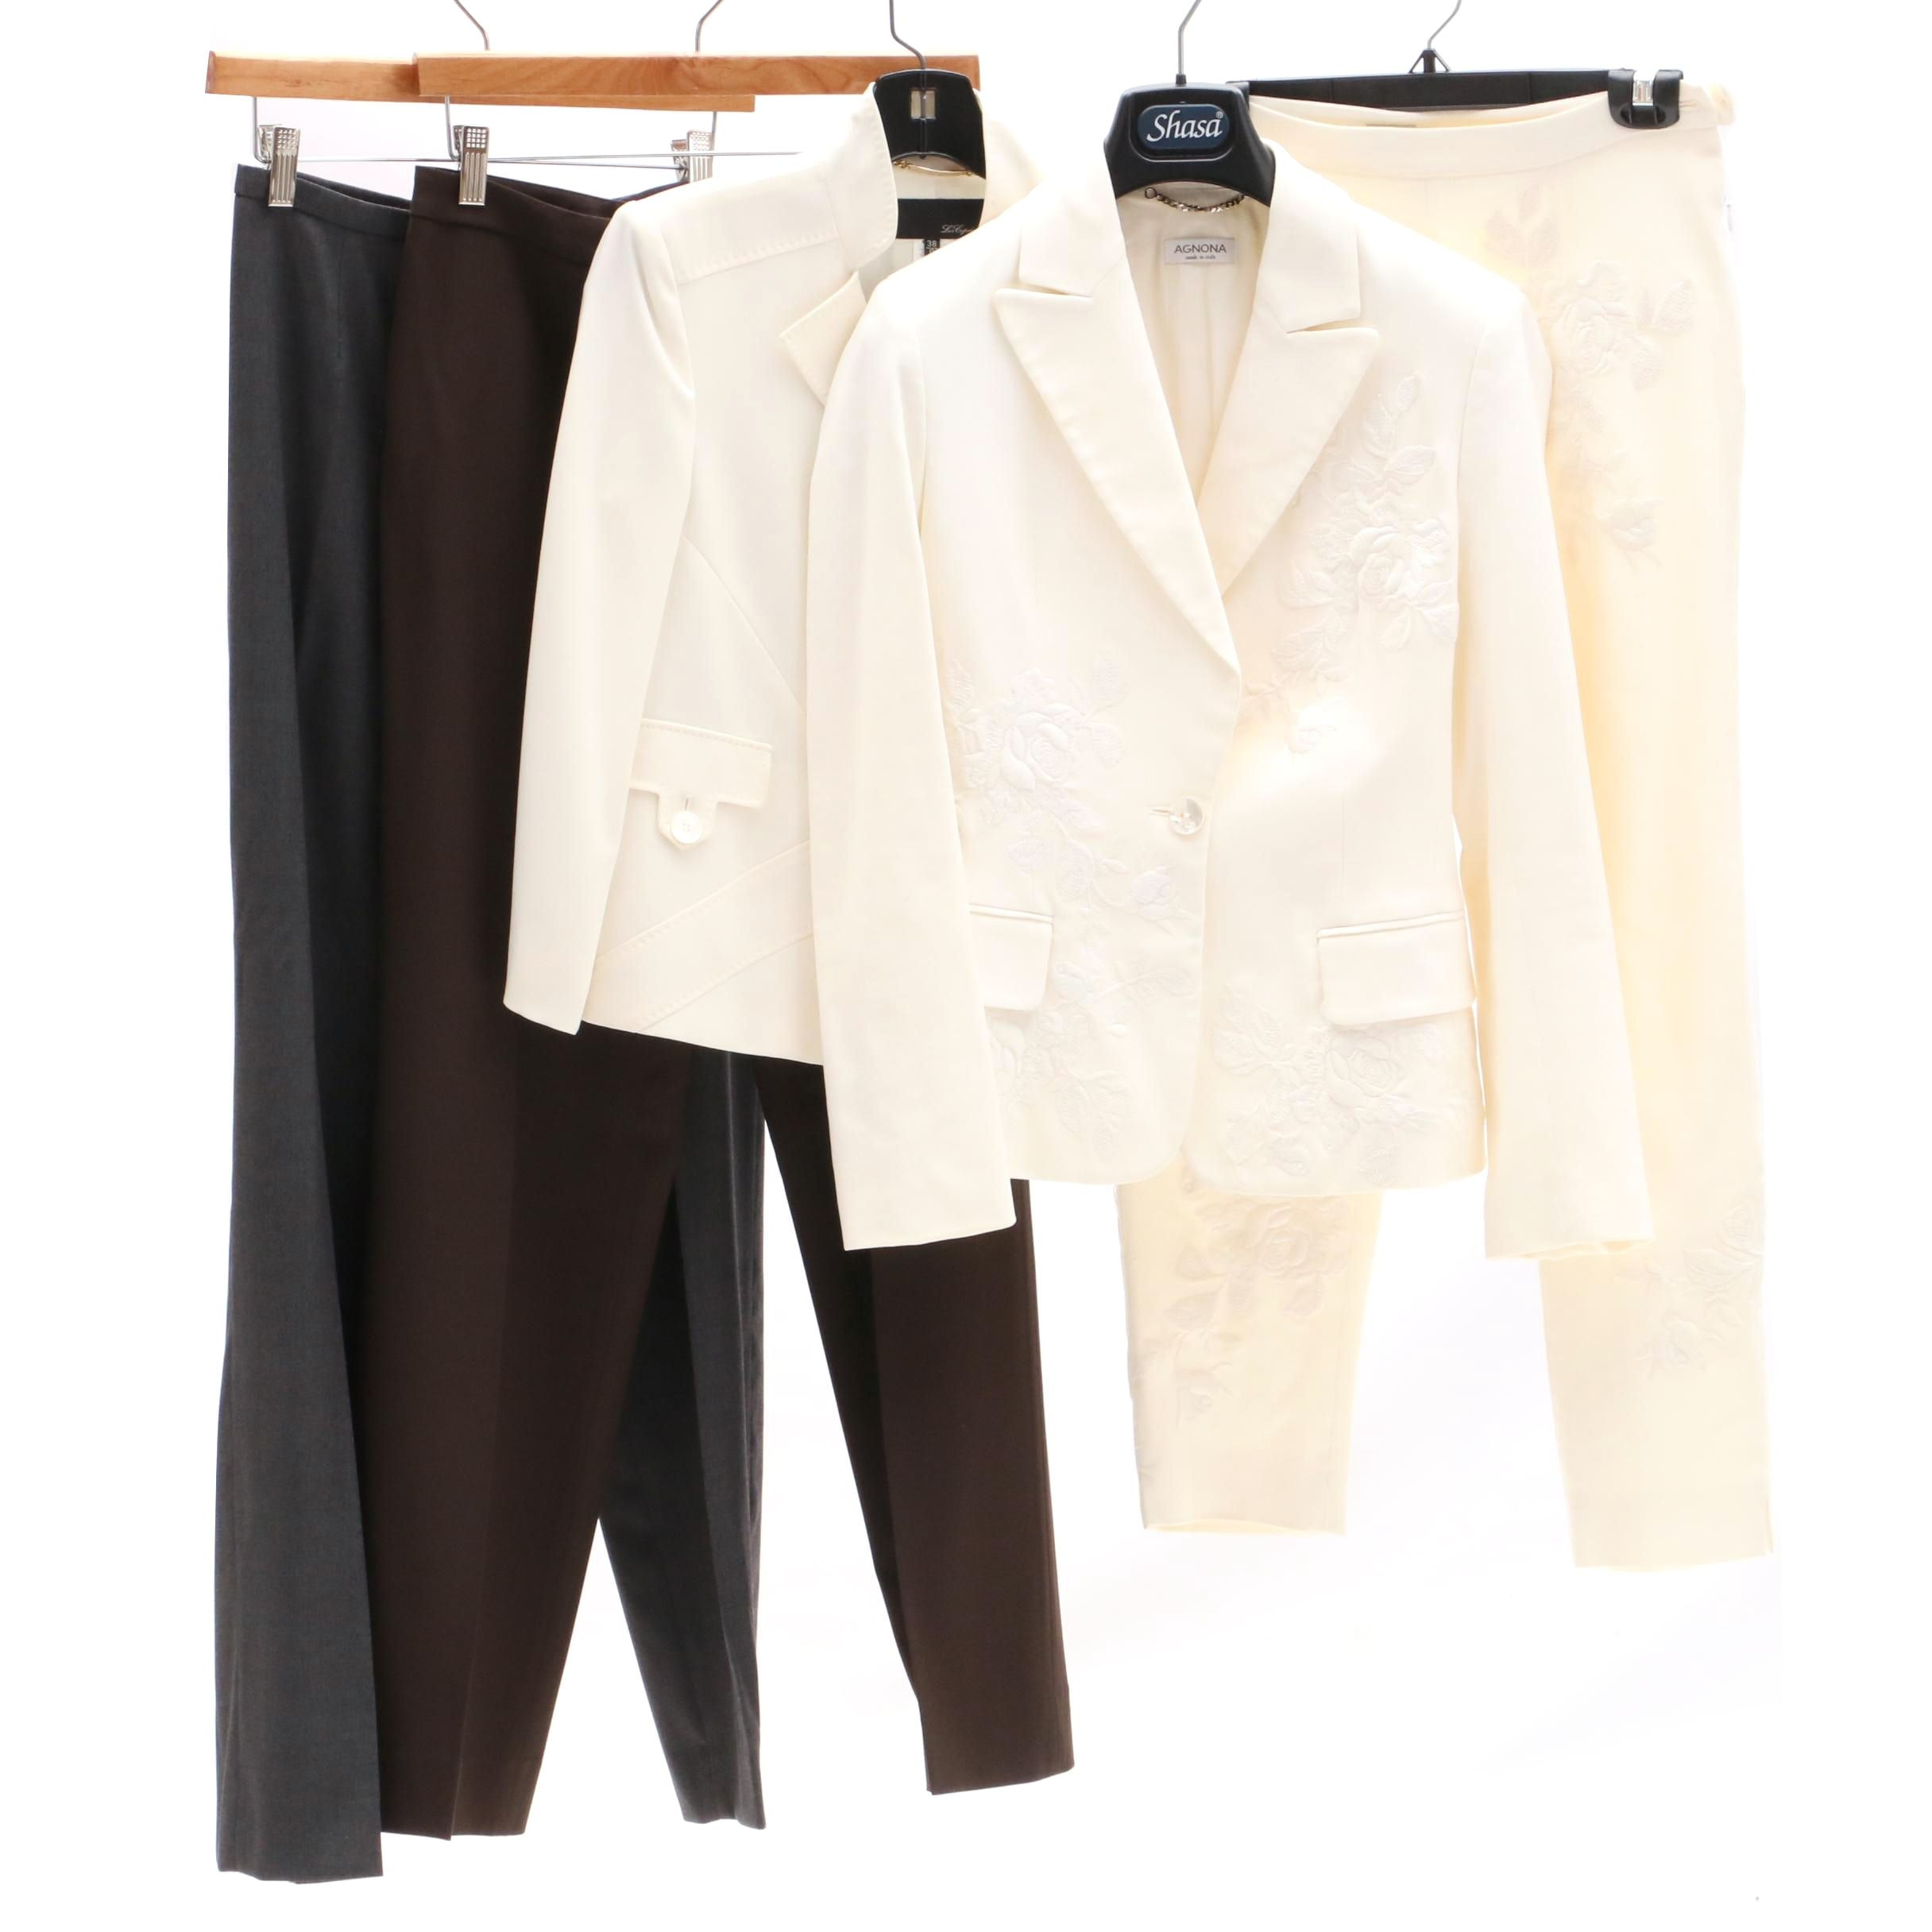 Agona Embroidered Suit and Les Copains Clothing Separates